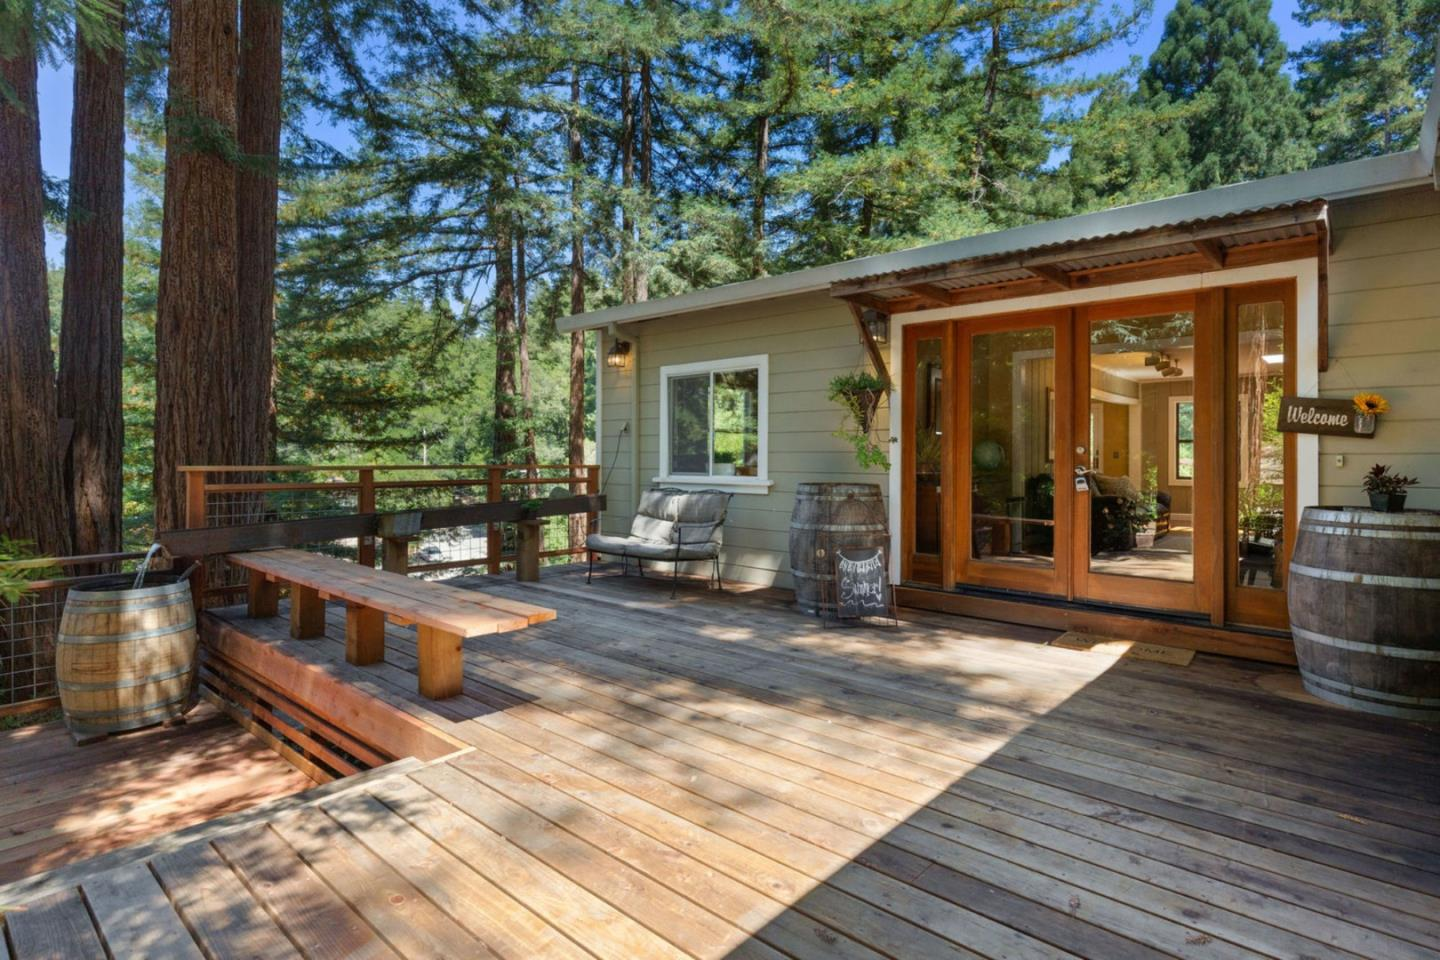 Contemporary single level home in the coveted Forest Lakes neighborhood. Home has 3 bedrooms, 3 bathrooms, plus a study/office, over 2,000 sqft on a sunny .43 acre parcel. The open floor plan is perfect for entertaining! The kitchen has a large island providing plenty of space for cooking and dining. The living room area includes a wood stove fireplace and plenty of natural light from the skylight and windows. The large romantic master bedroom has a wood stove fireplace, bay windows looking out at the beautiful redwoods, and an en-suite master bath with a walk in shower and access to a private bamboo covered patio. The front and back decks are surrounded by redwoods, several of which support a spacious treehouse! Other amenities include 2 car carport, detached garage/workshop, and a large basement storage area. The Forest Lakes community offers a seasonal community pool and activities. Close to shopping & dining in town, Henry Cowell State Park hiking, and easy freeway access.